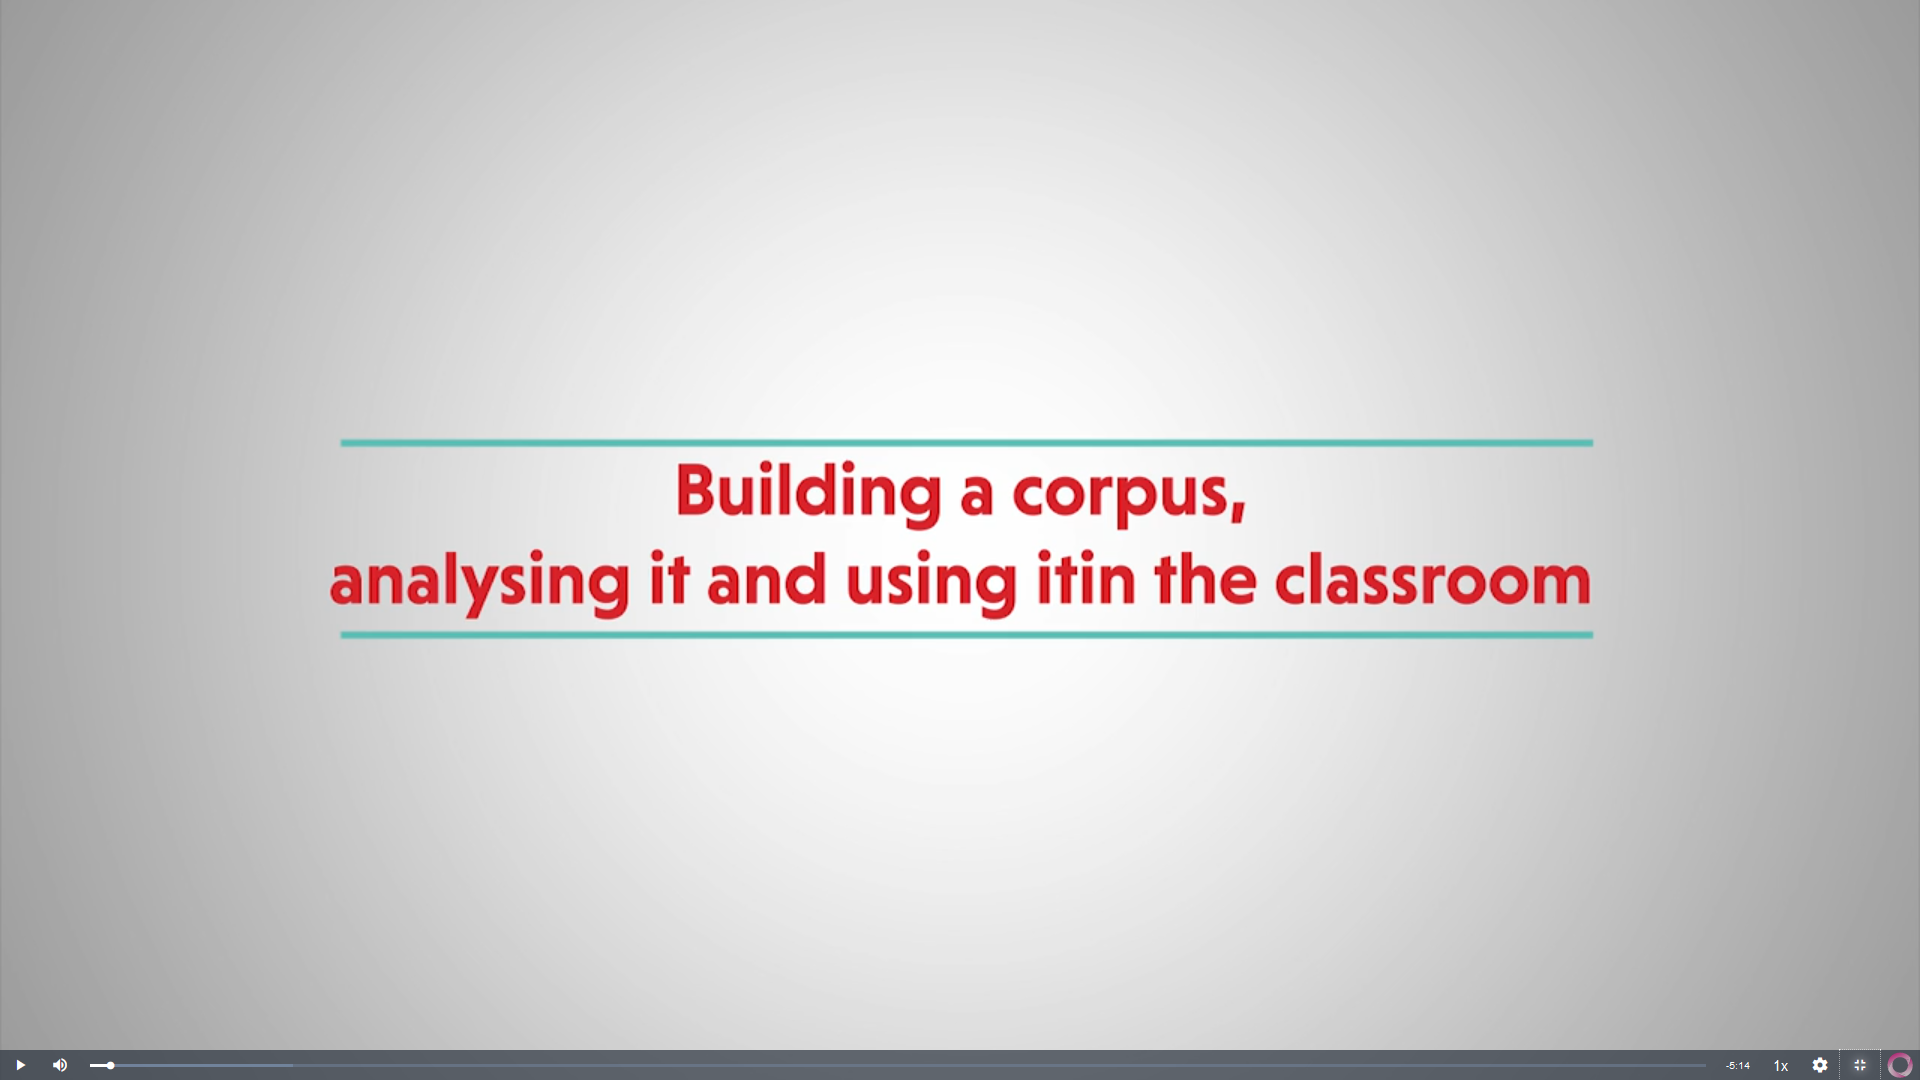 Building a corpus, analysing it and using it in the classroom